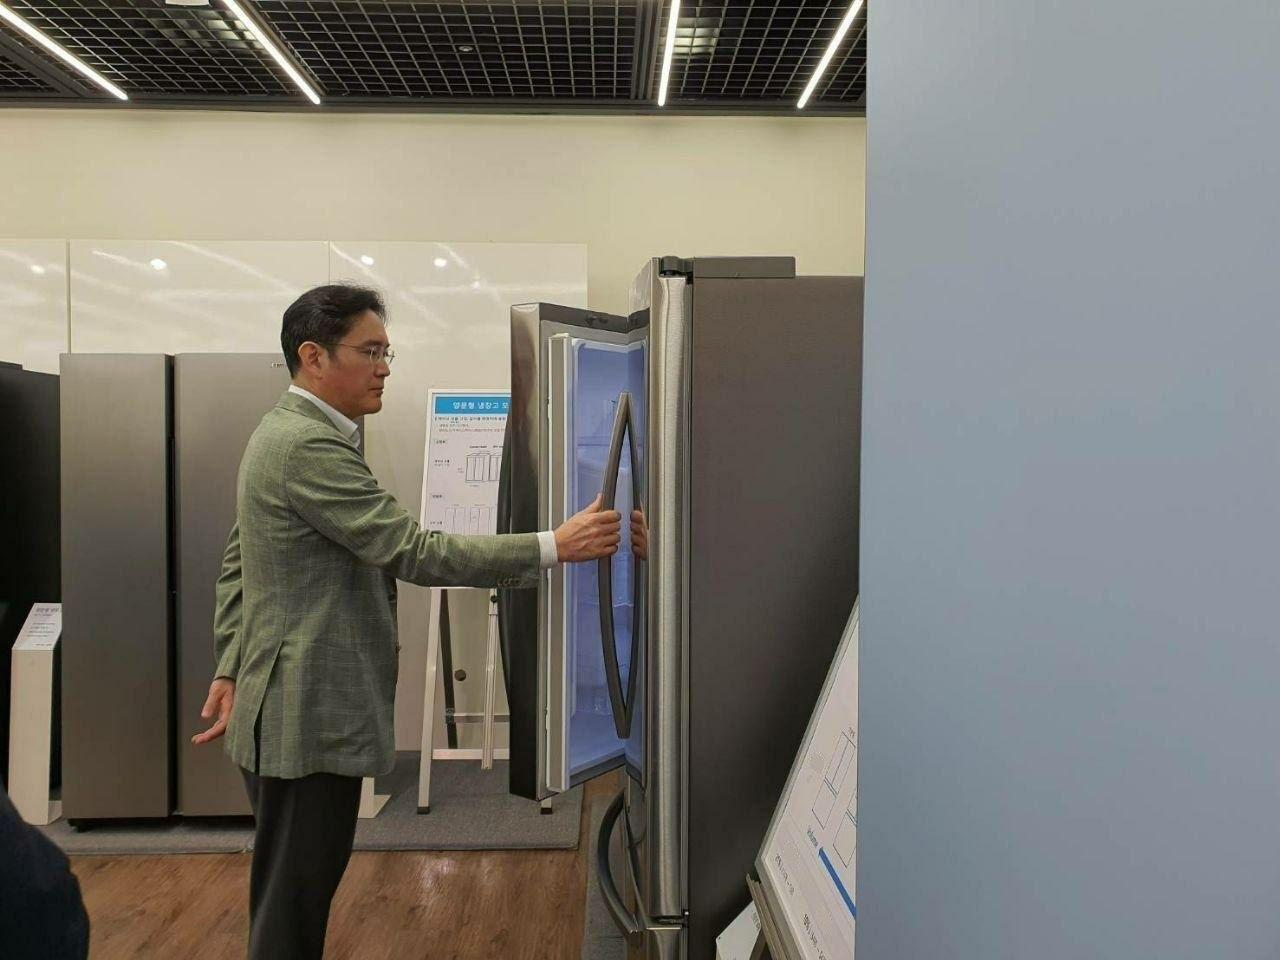 Samsung heir Lee Jae-yong opens a refrigerator at a showroom at the consumer electronics headquarters in Suwon, Gyeonggi Province, on Tuesday. (Samsung Electronics)